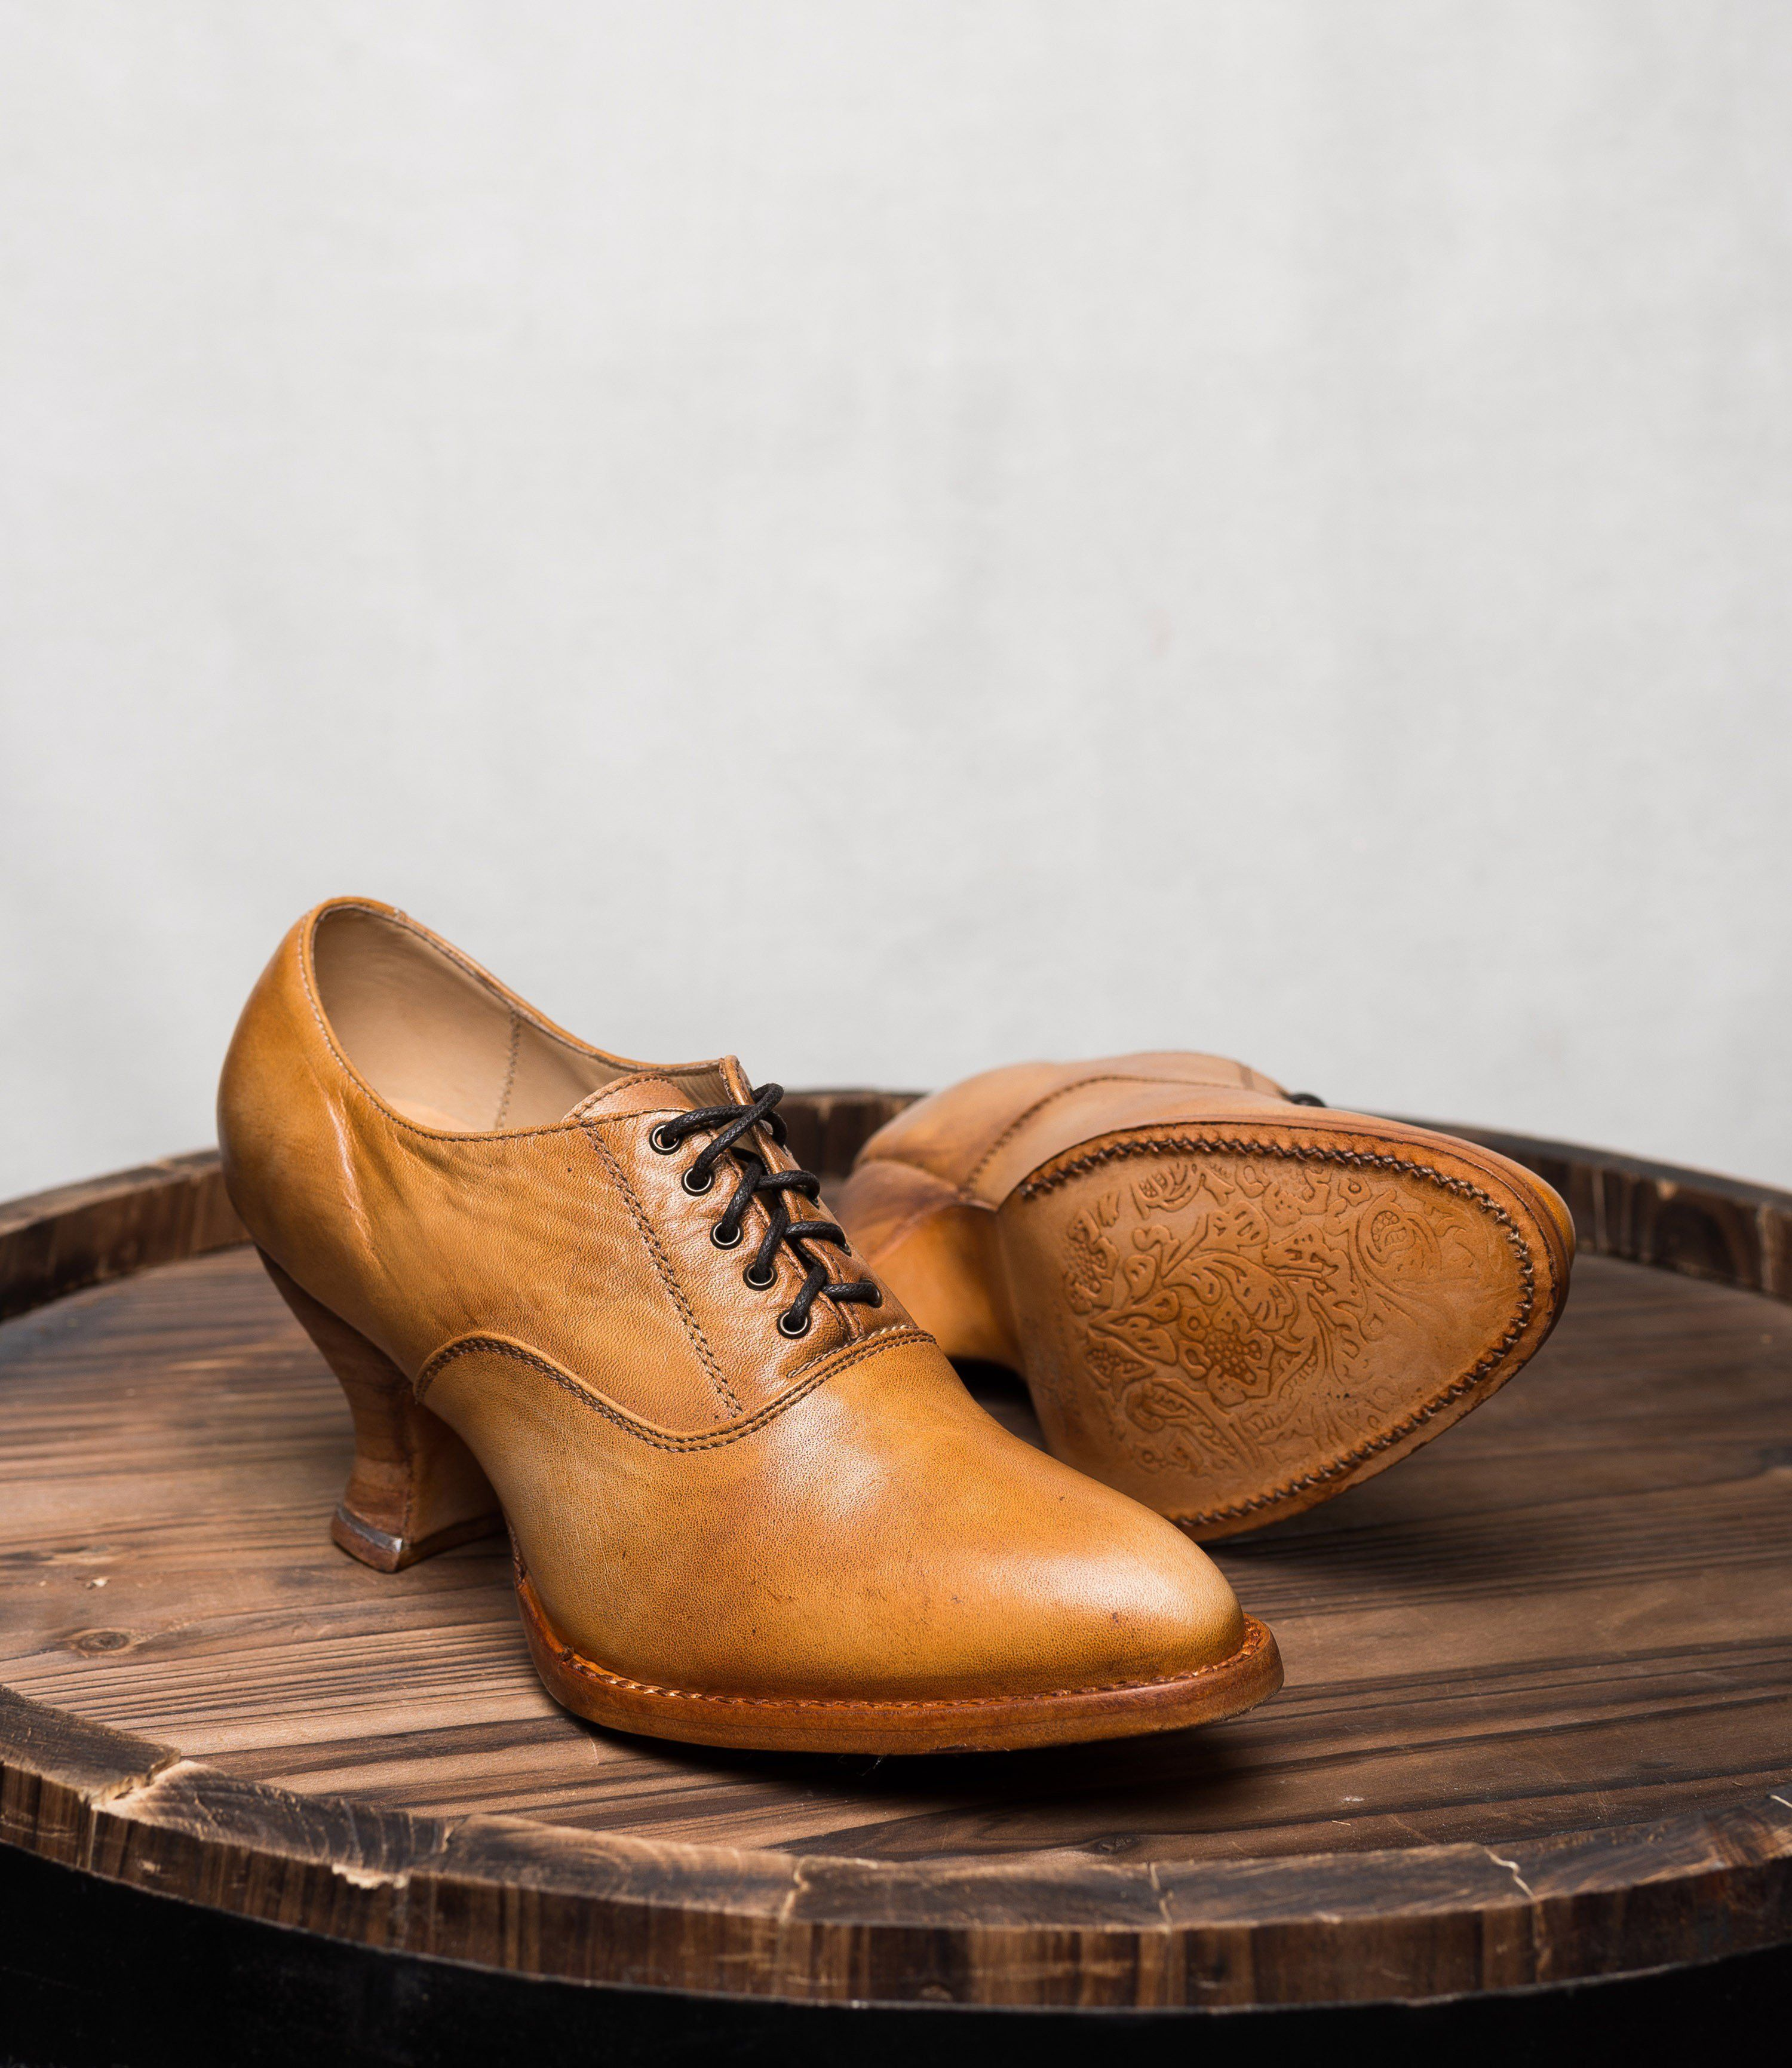 5378767ddd17 Victorian Shoes Victorian Style Leather Lace-Up Shoes in Natural Rustic  195.00  AT vintagedancer.